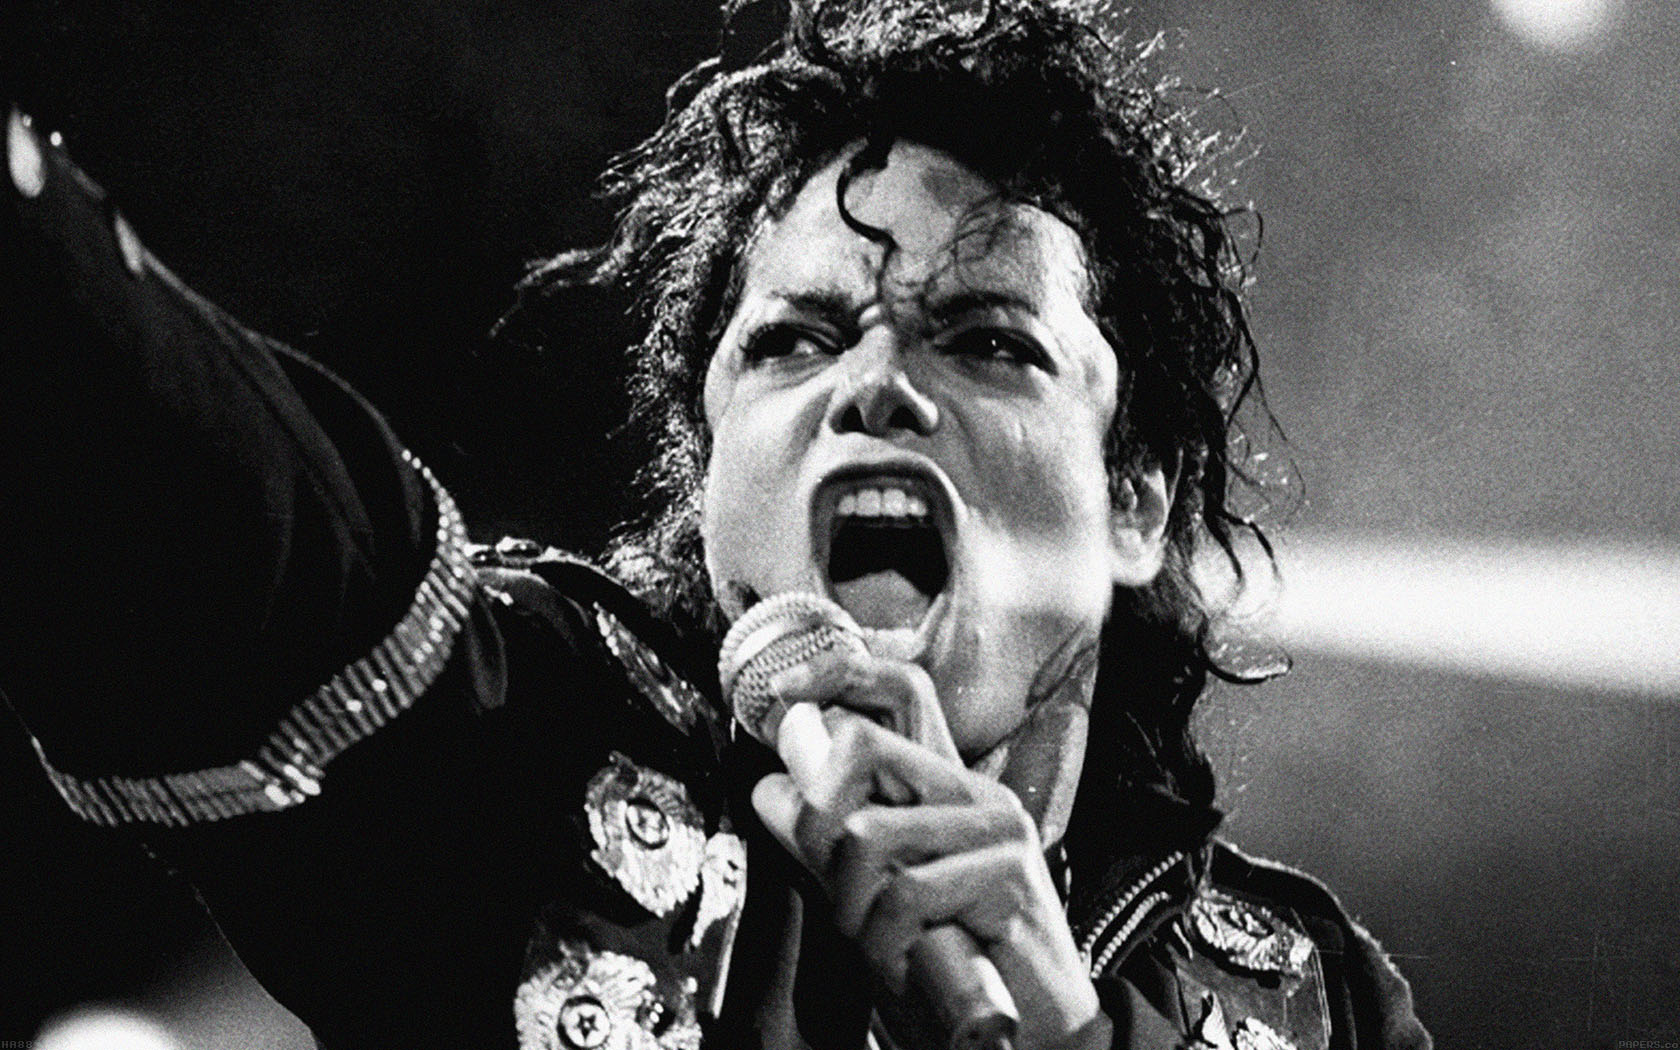 Animal Wallpaper Full Hd Ha88 Wallpaper Michael Jackson Sing Music Face Papers Co